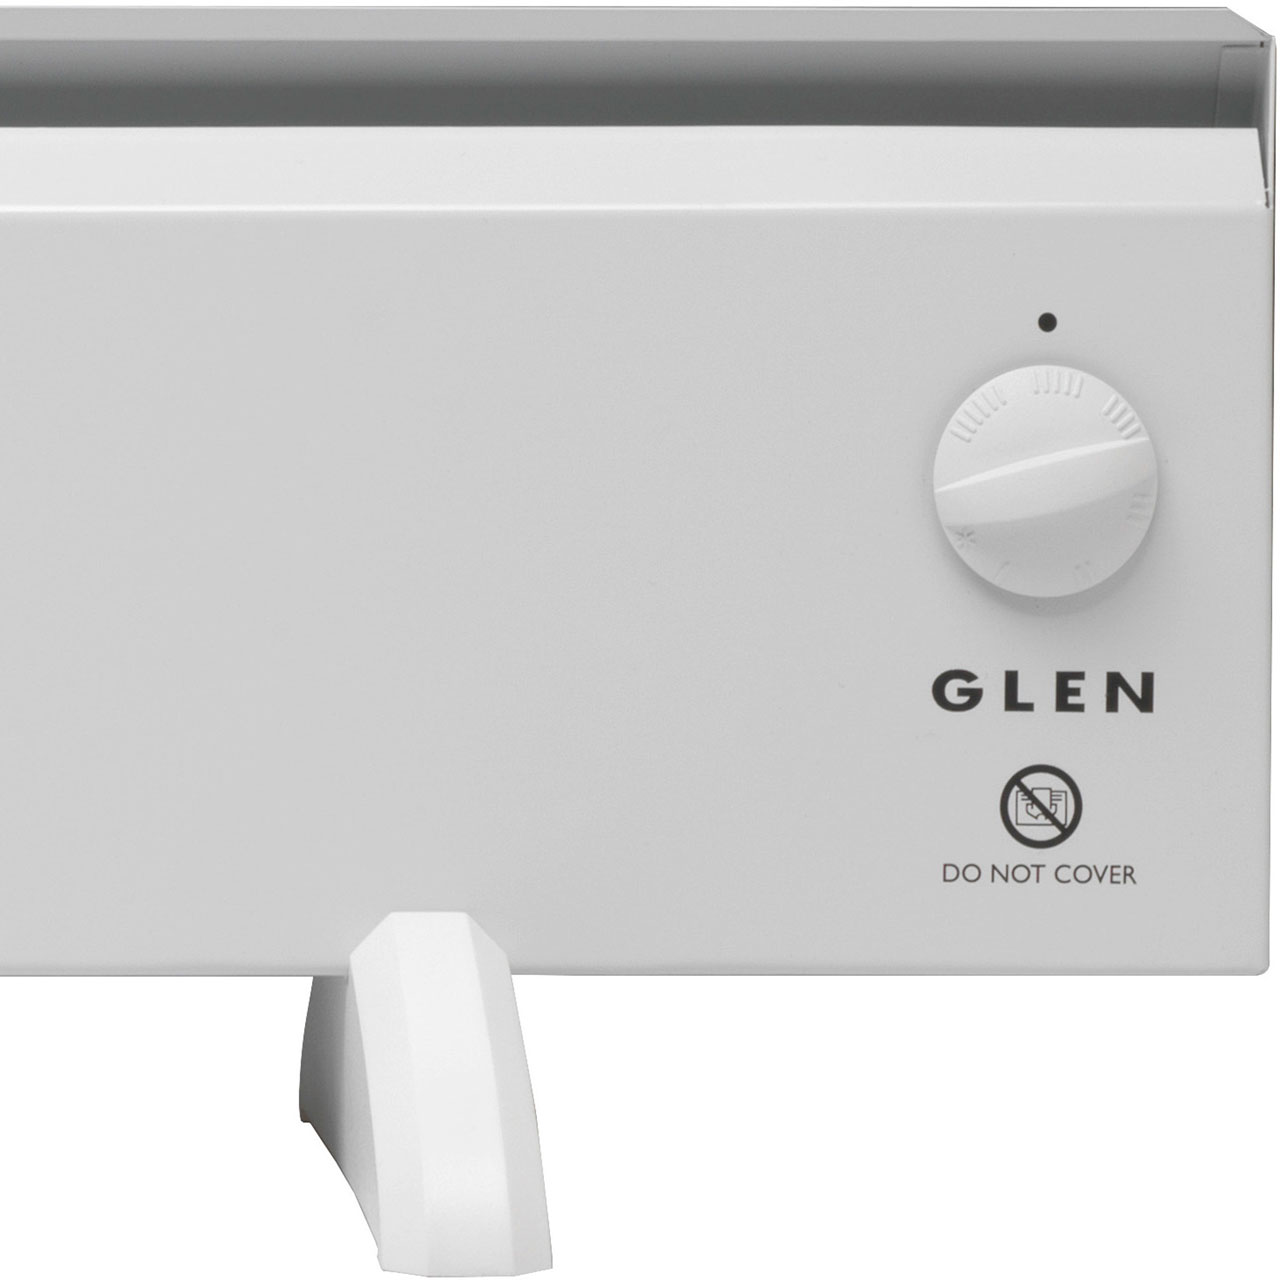 Glen 2150Tie7 Electric Convector Heater